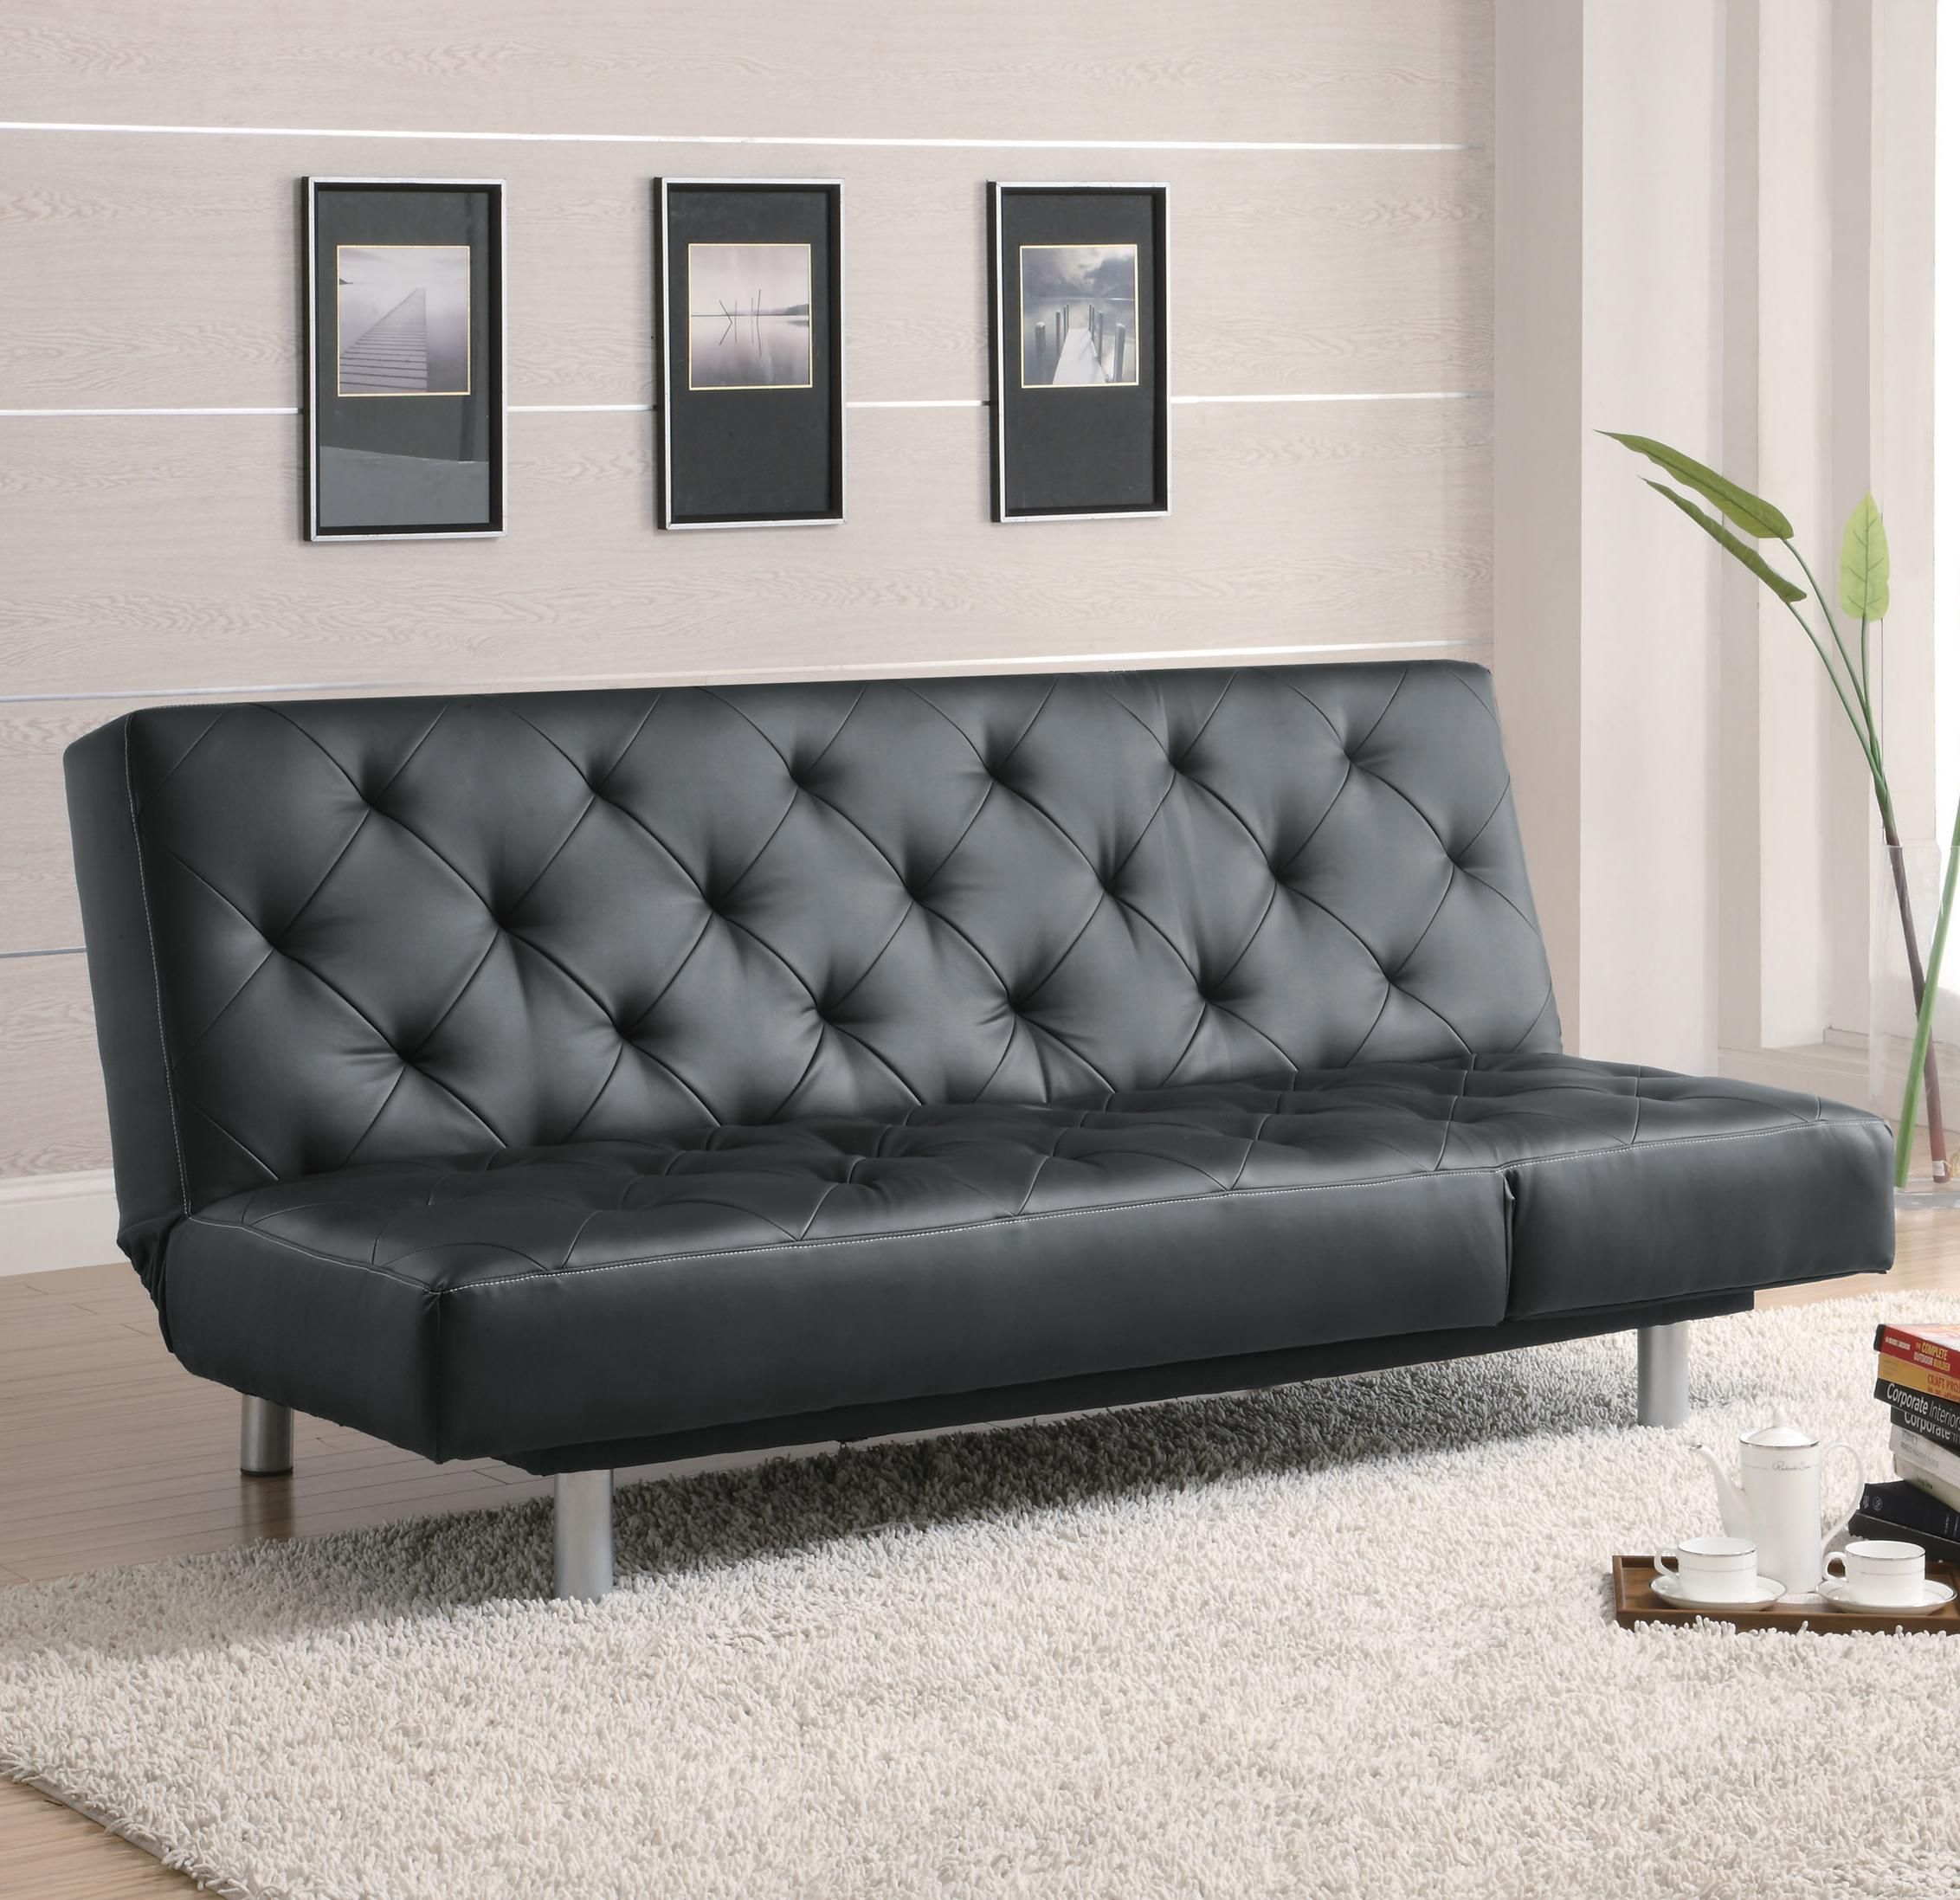 Futons Black Vinyl Tufted Sofa Bed